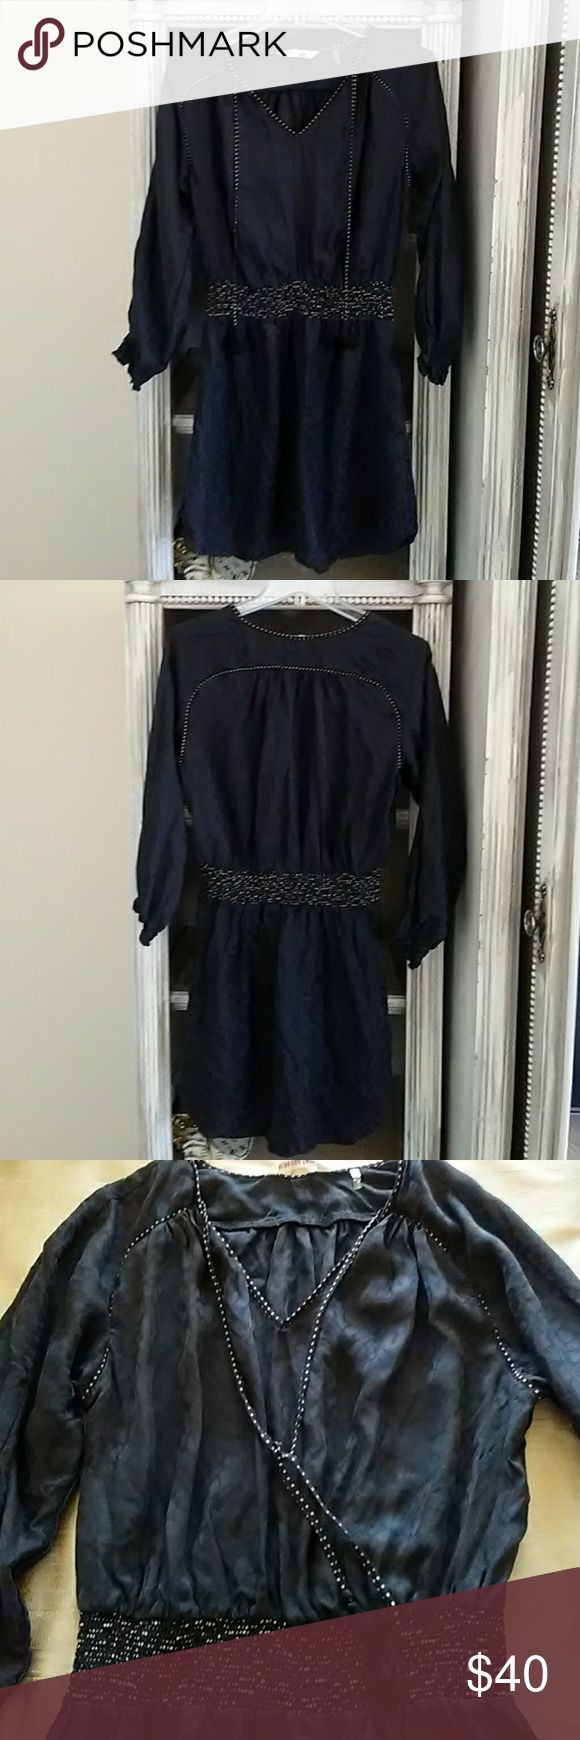 I just added this listing on Poshmark: Rebecca Taylor Silk Dress. #shopmycloset #poshmark #fashion #shopping #style #forsale #Rebecca Taylor #Dresses & Skirts